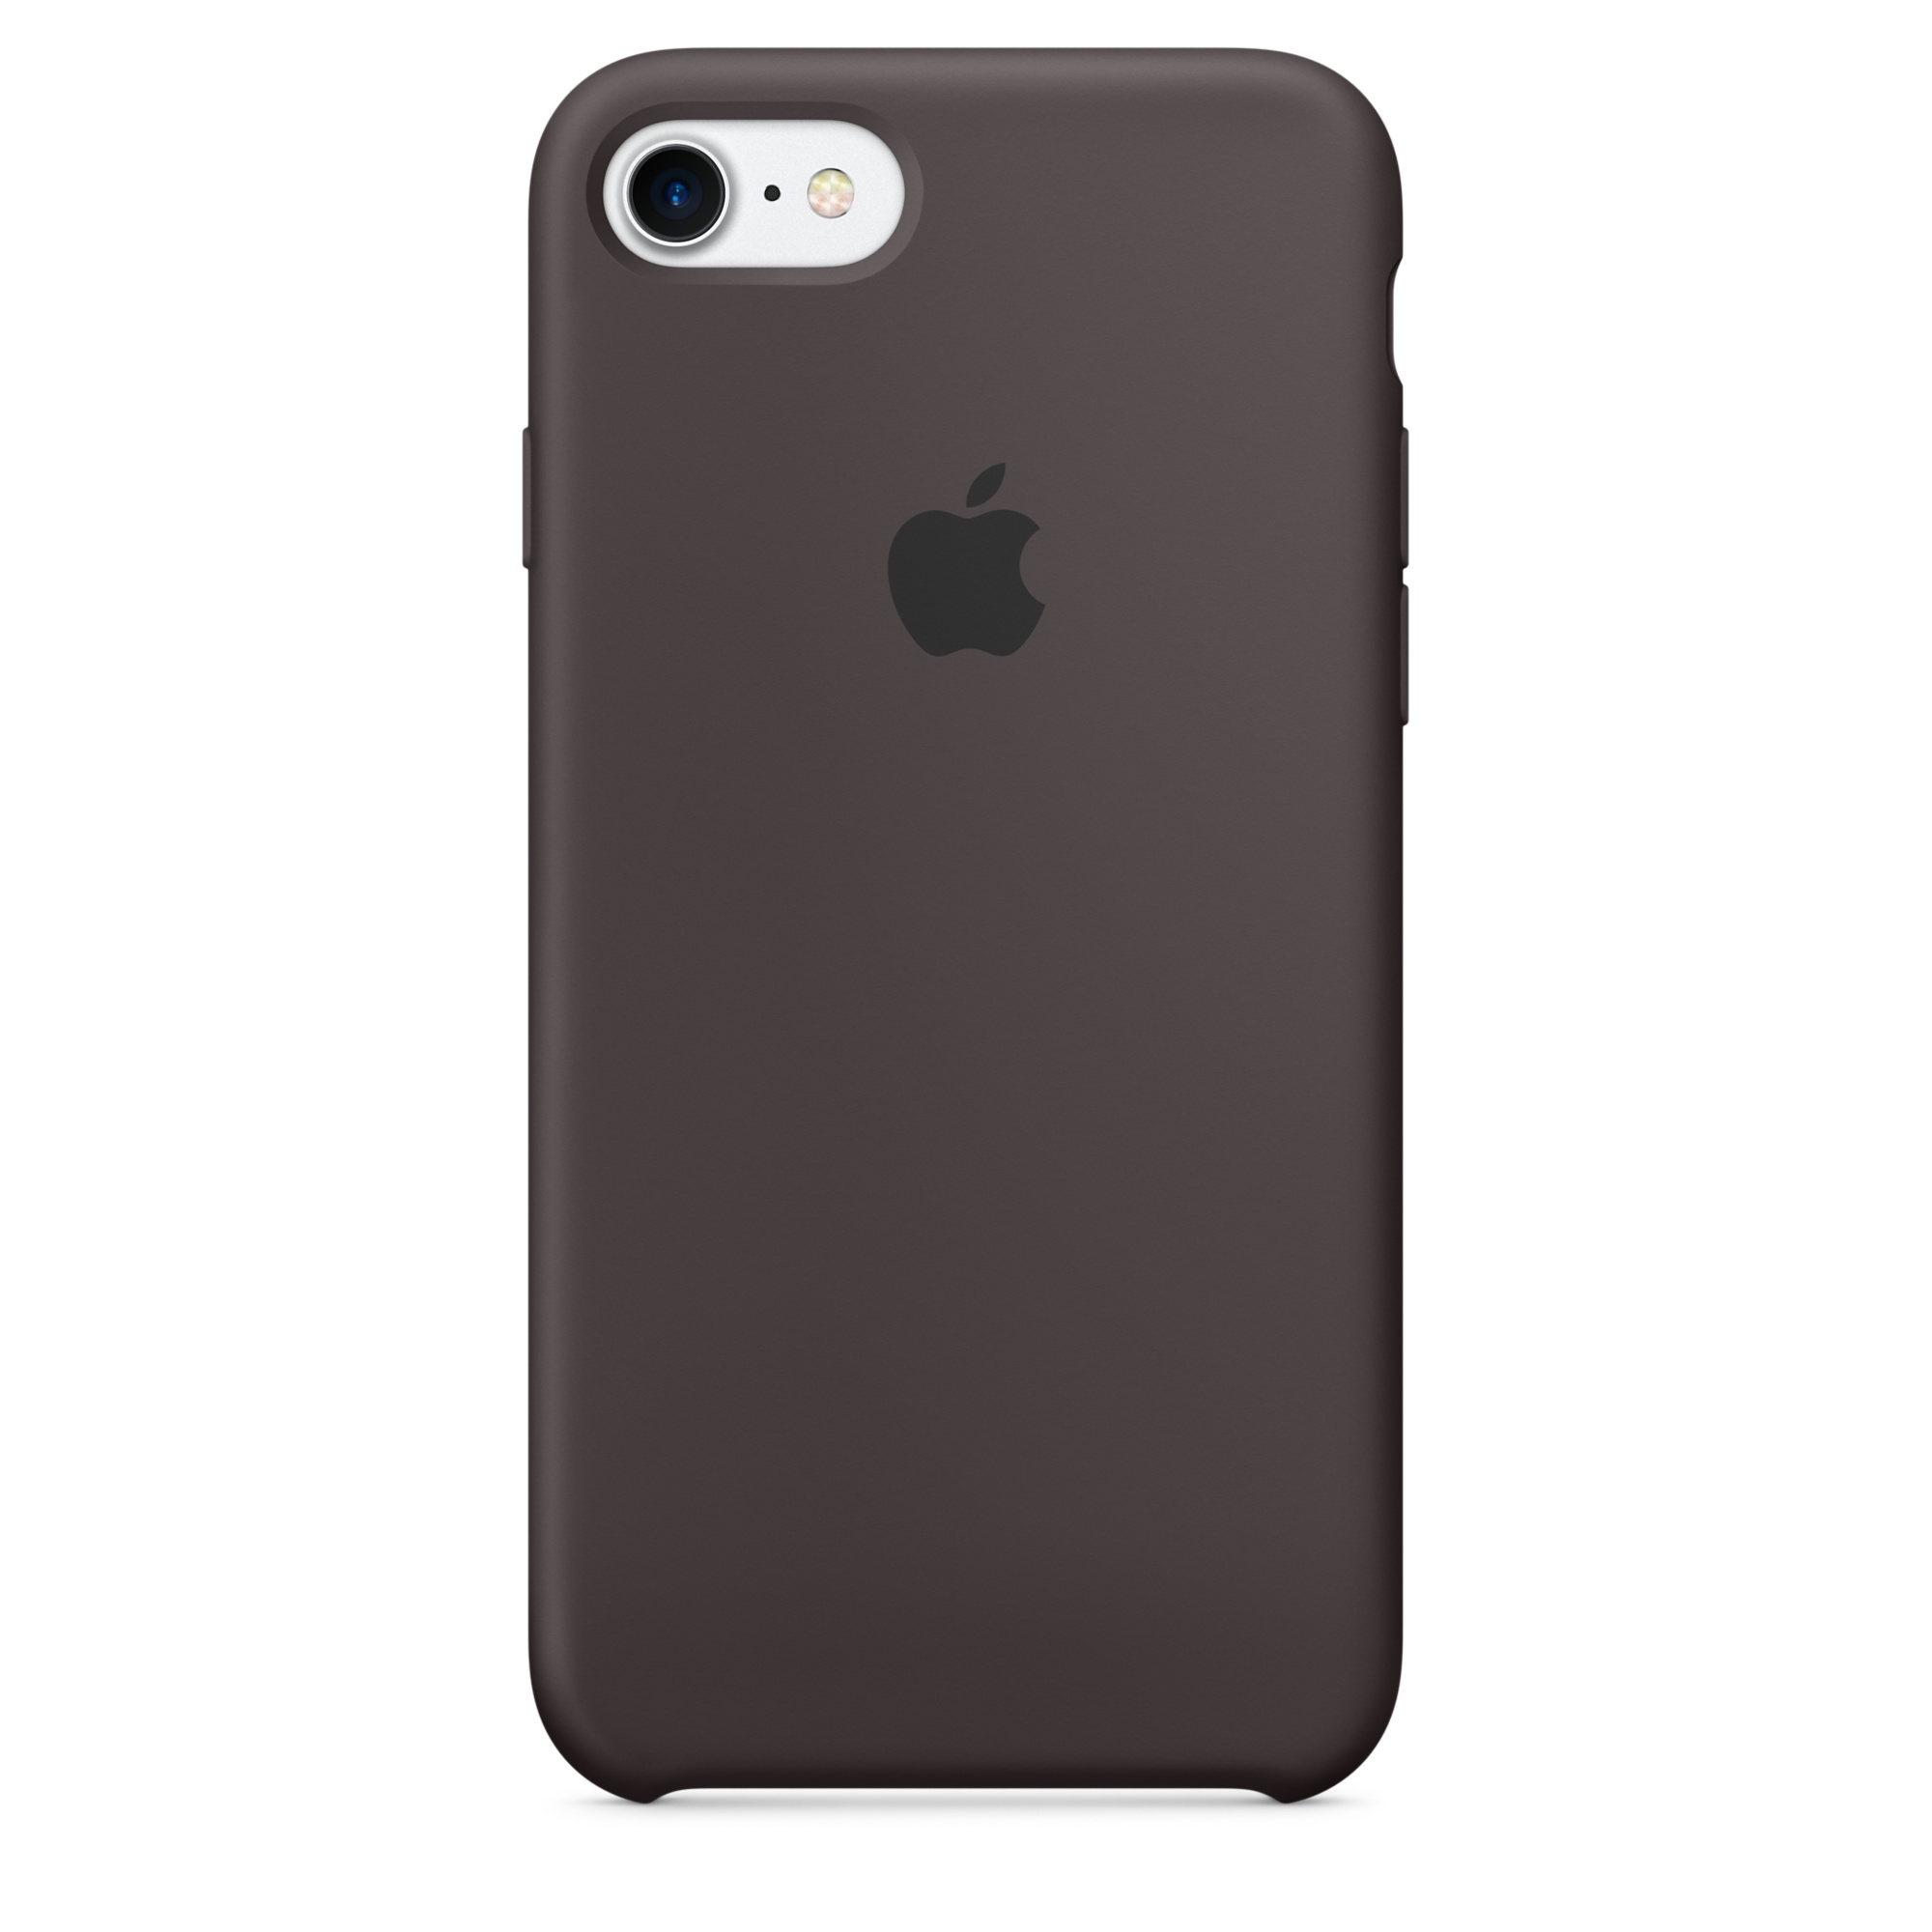 Pouzdro / kryt pro Apple iPhone 7 - Apple, Silicone Case Cocoa mmx22zm/a